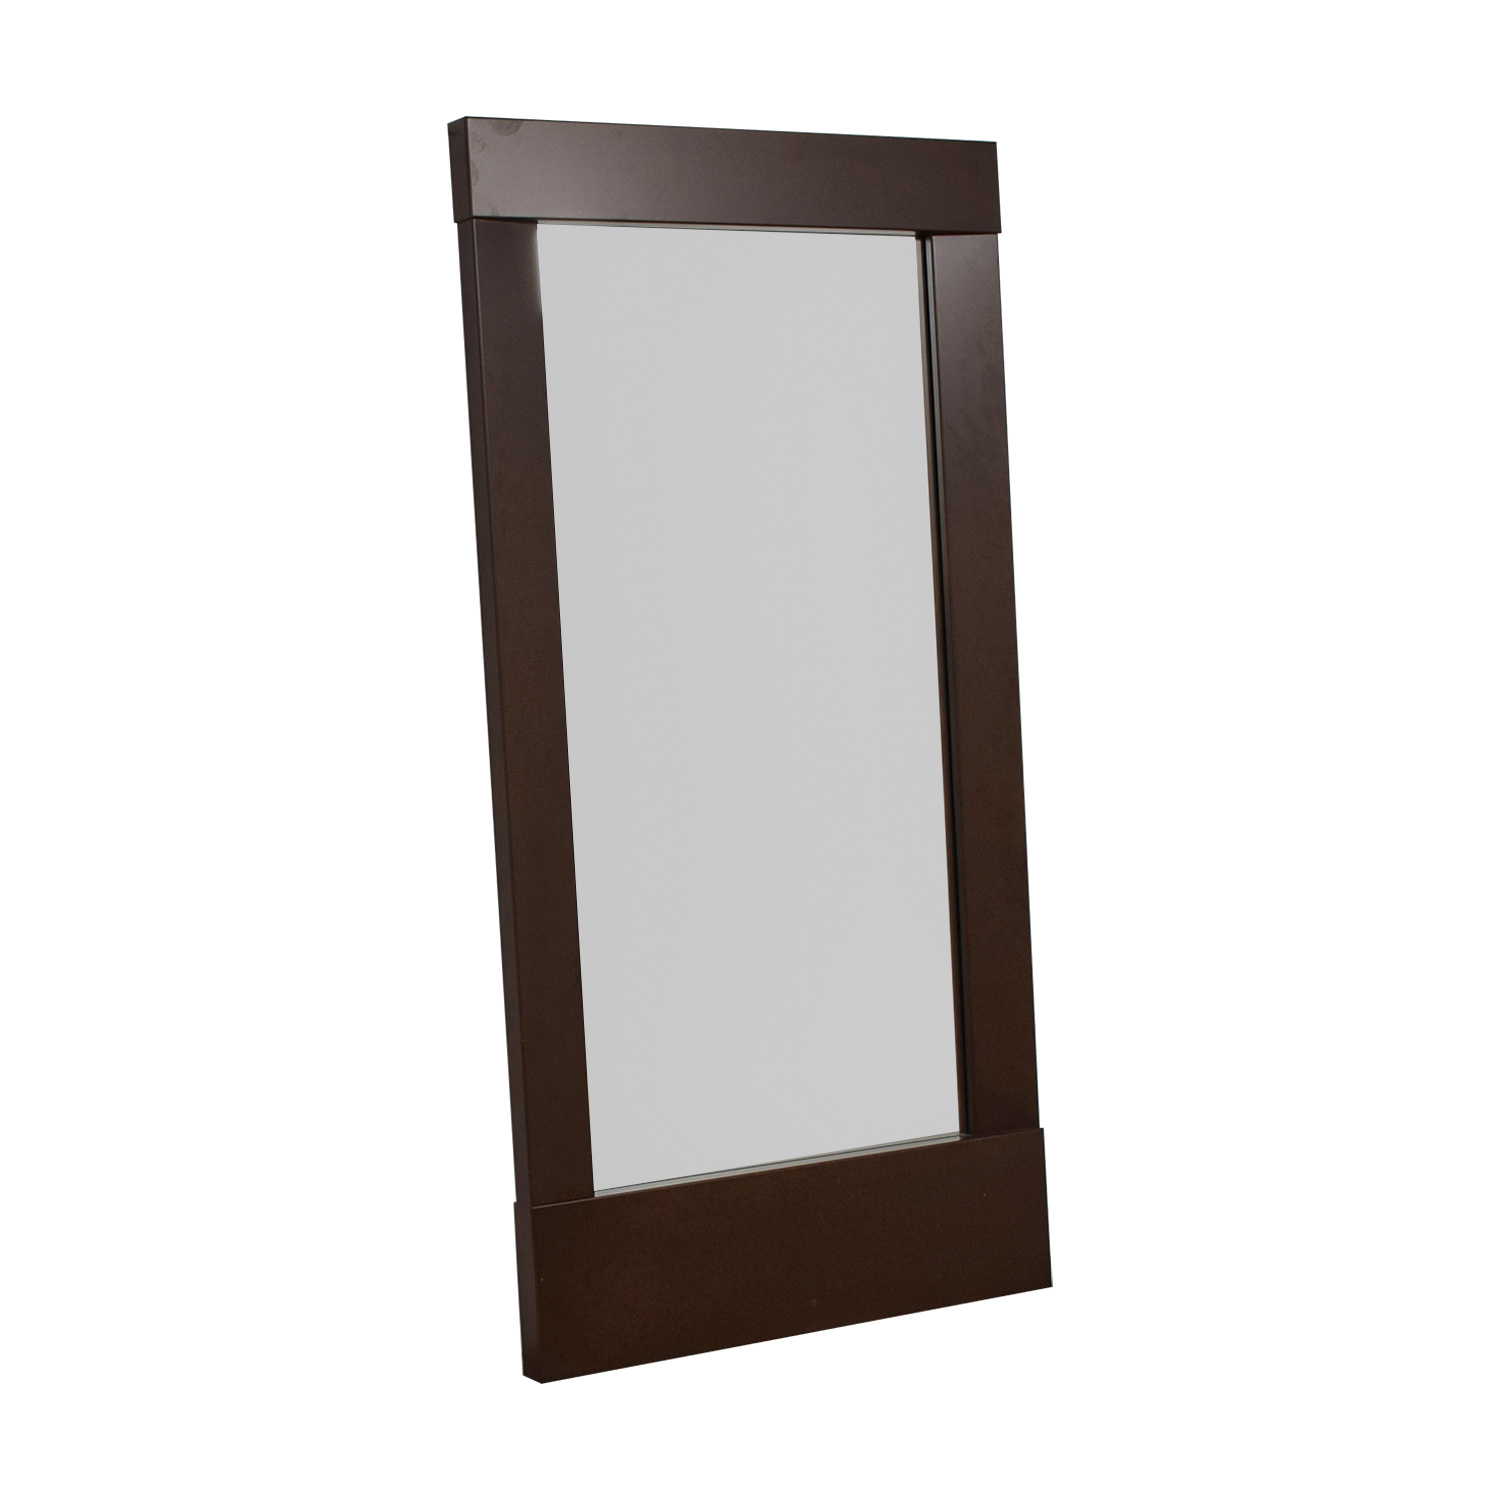 Crate & Barrel Crate & Barrel Colby Bronze Floor Mirror Decor